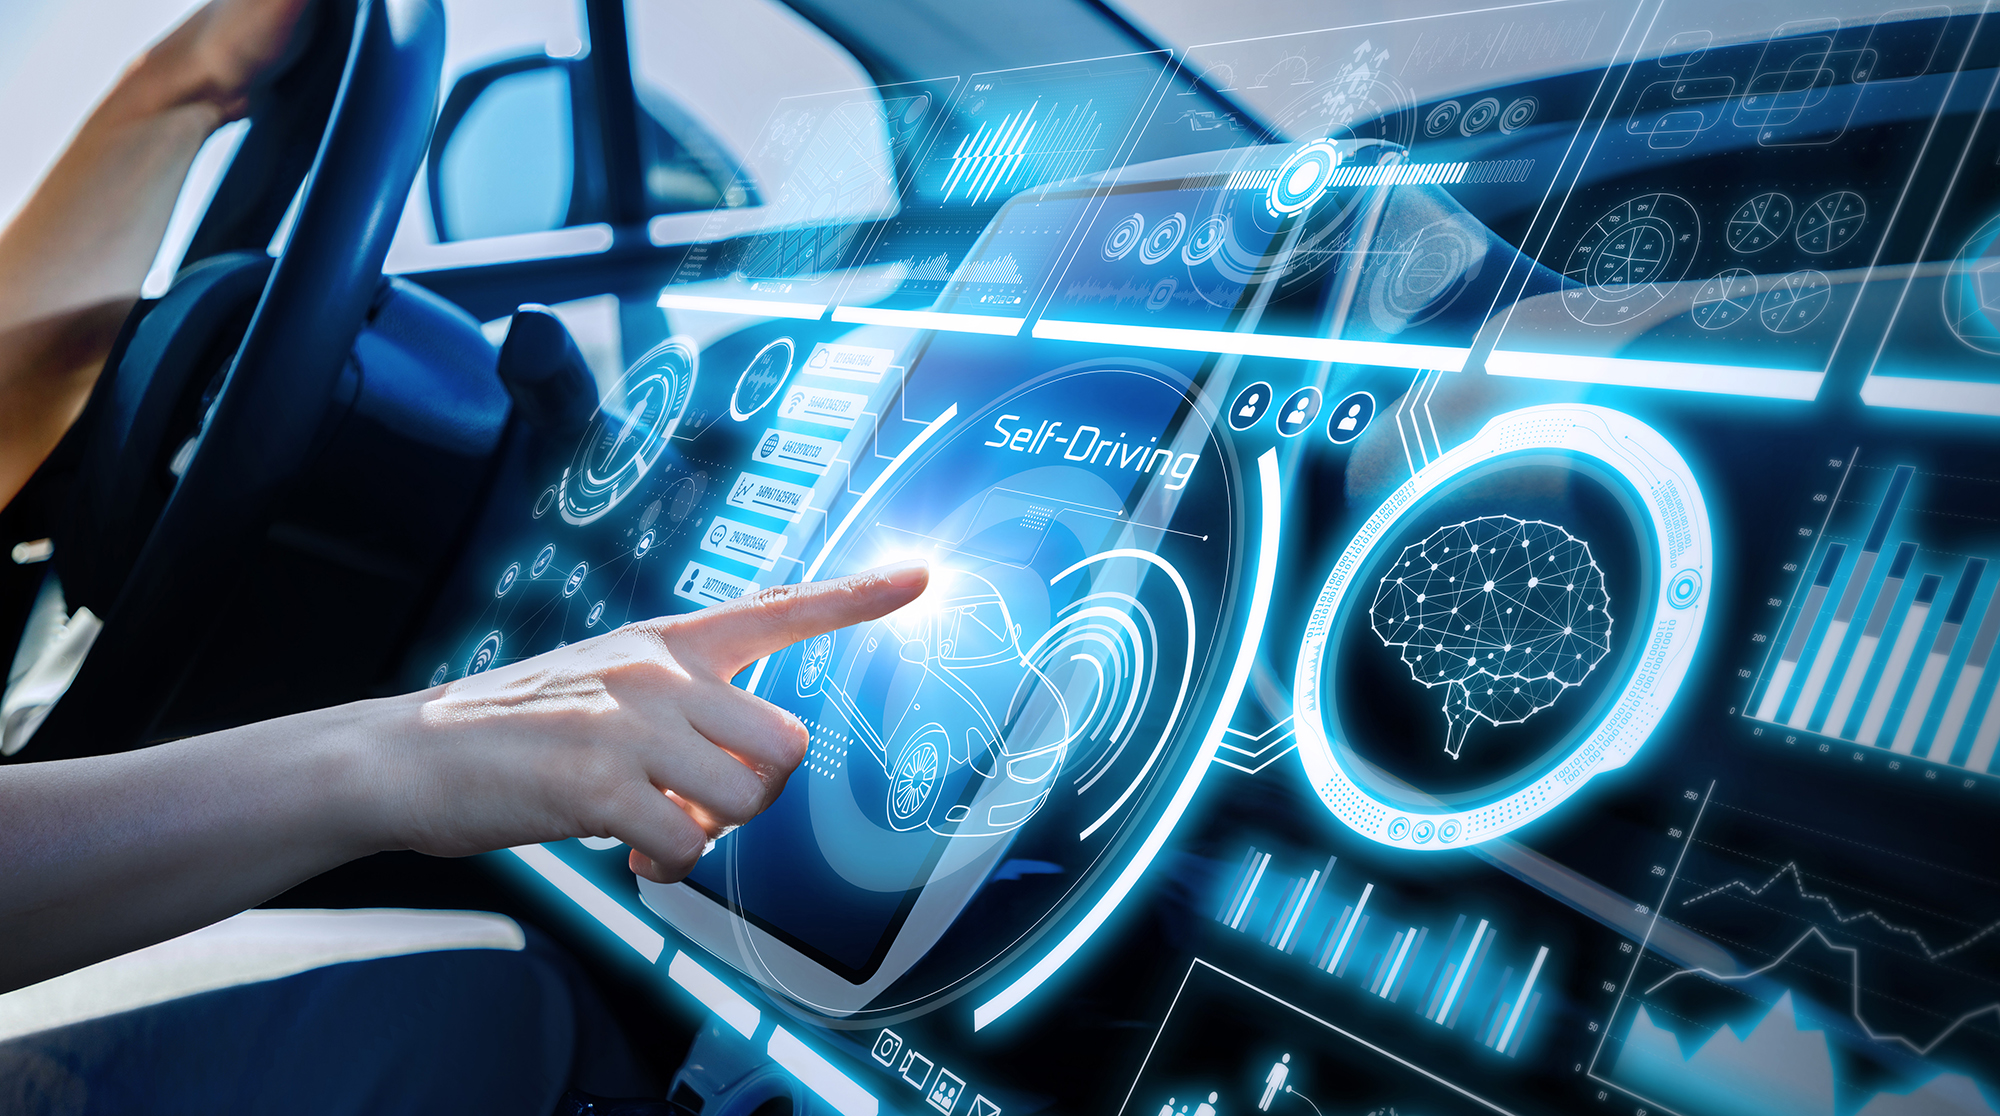 Automotive cybersecurity regulation imposes lifetime obligation on car makers